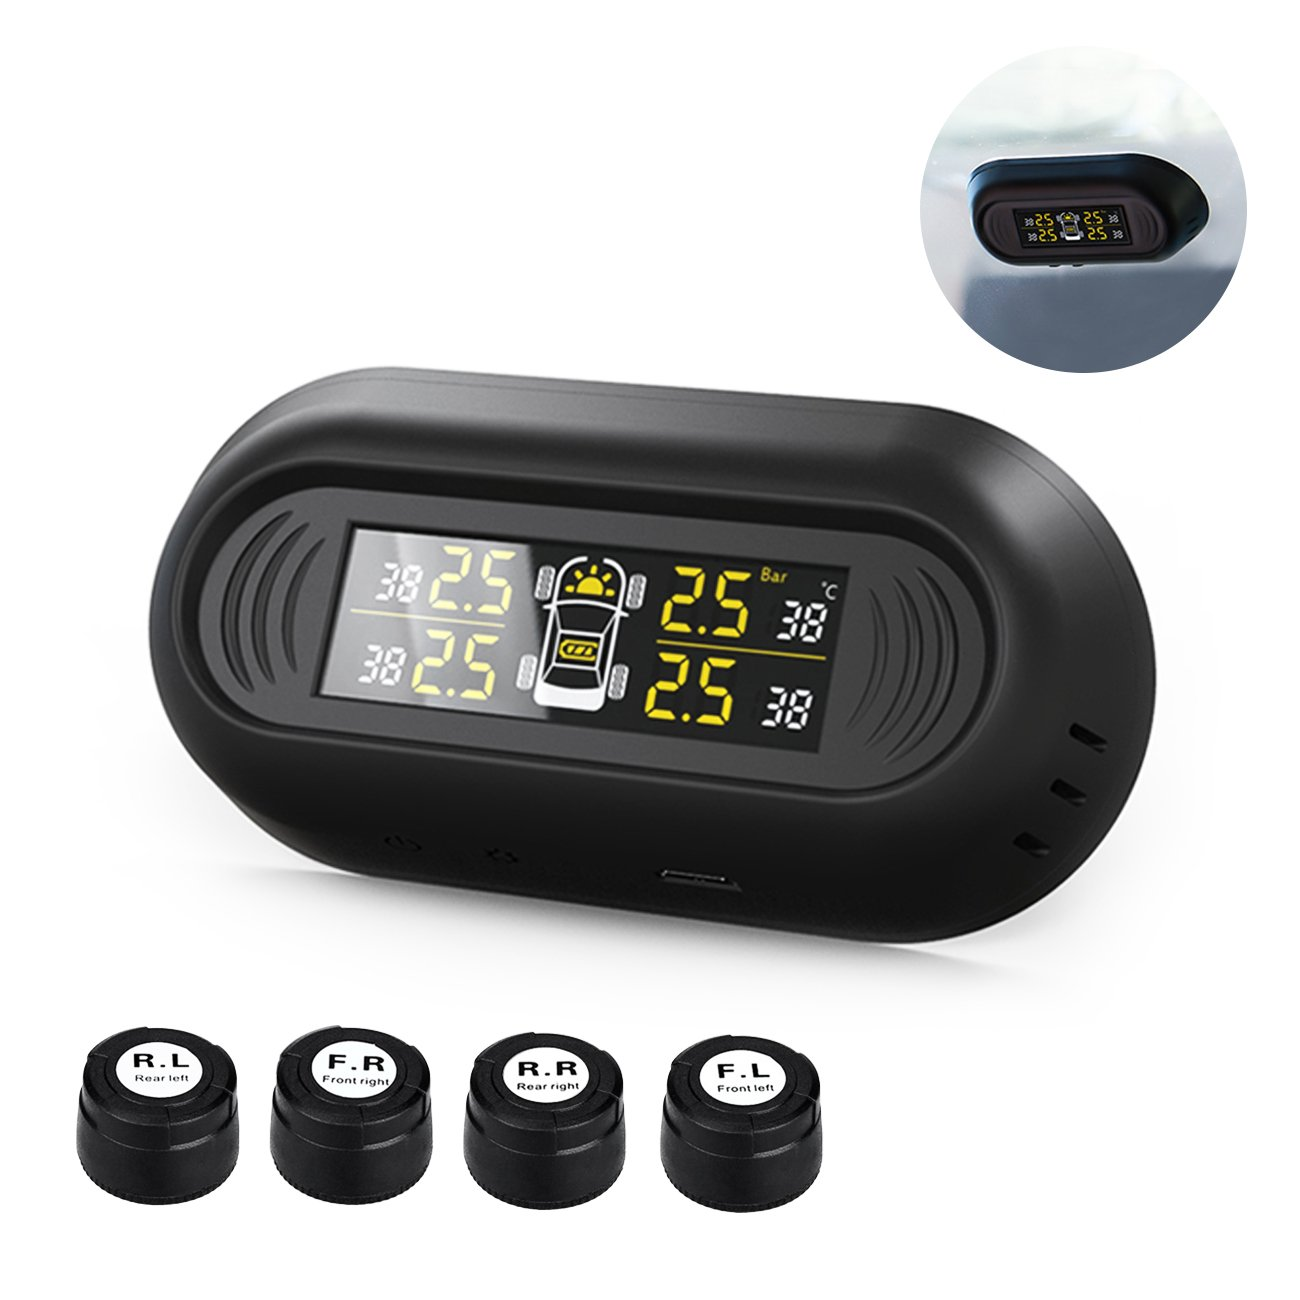 Favoto TPMS Tire Pressure Monitoring System Wireless Solar Power Installed on Window Pane with 4 External Sensors LCD Real-Time Display 4 Tires